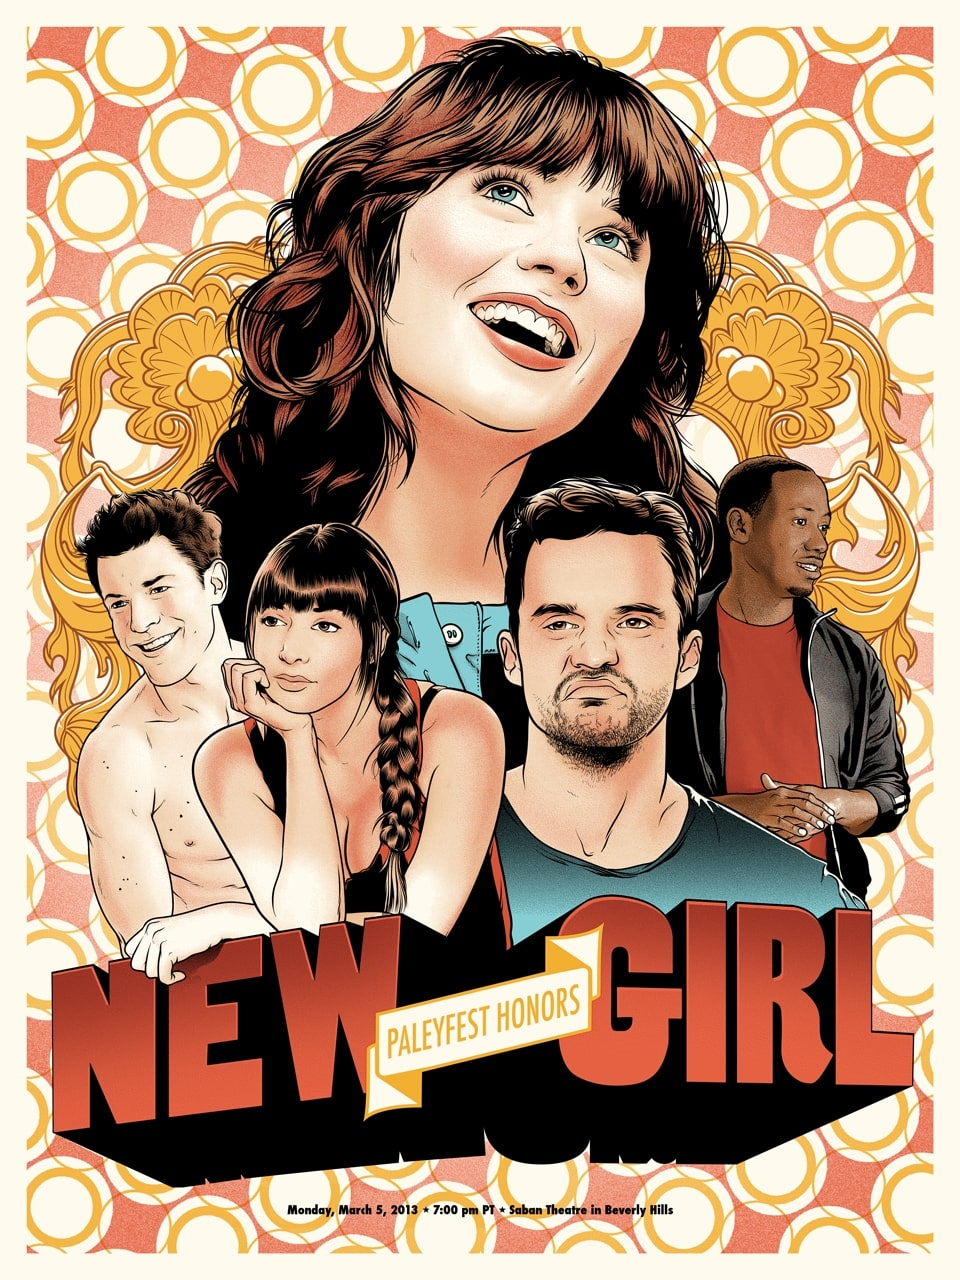 270213_joshuabudich_newgirl-preview